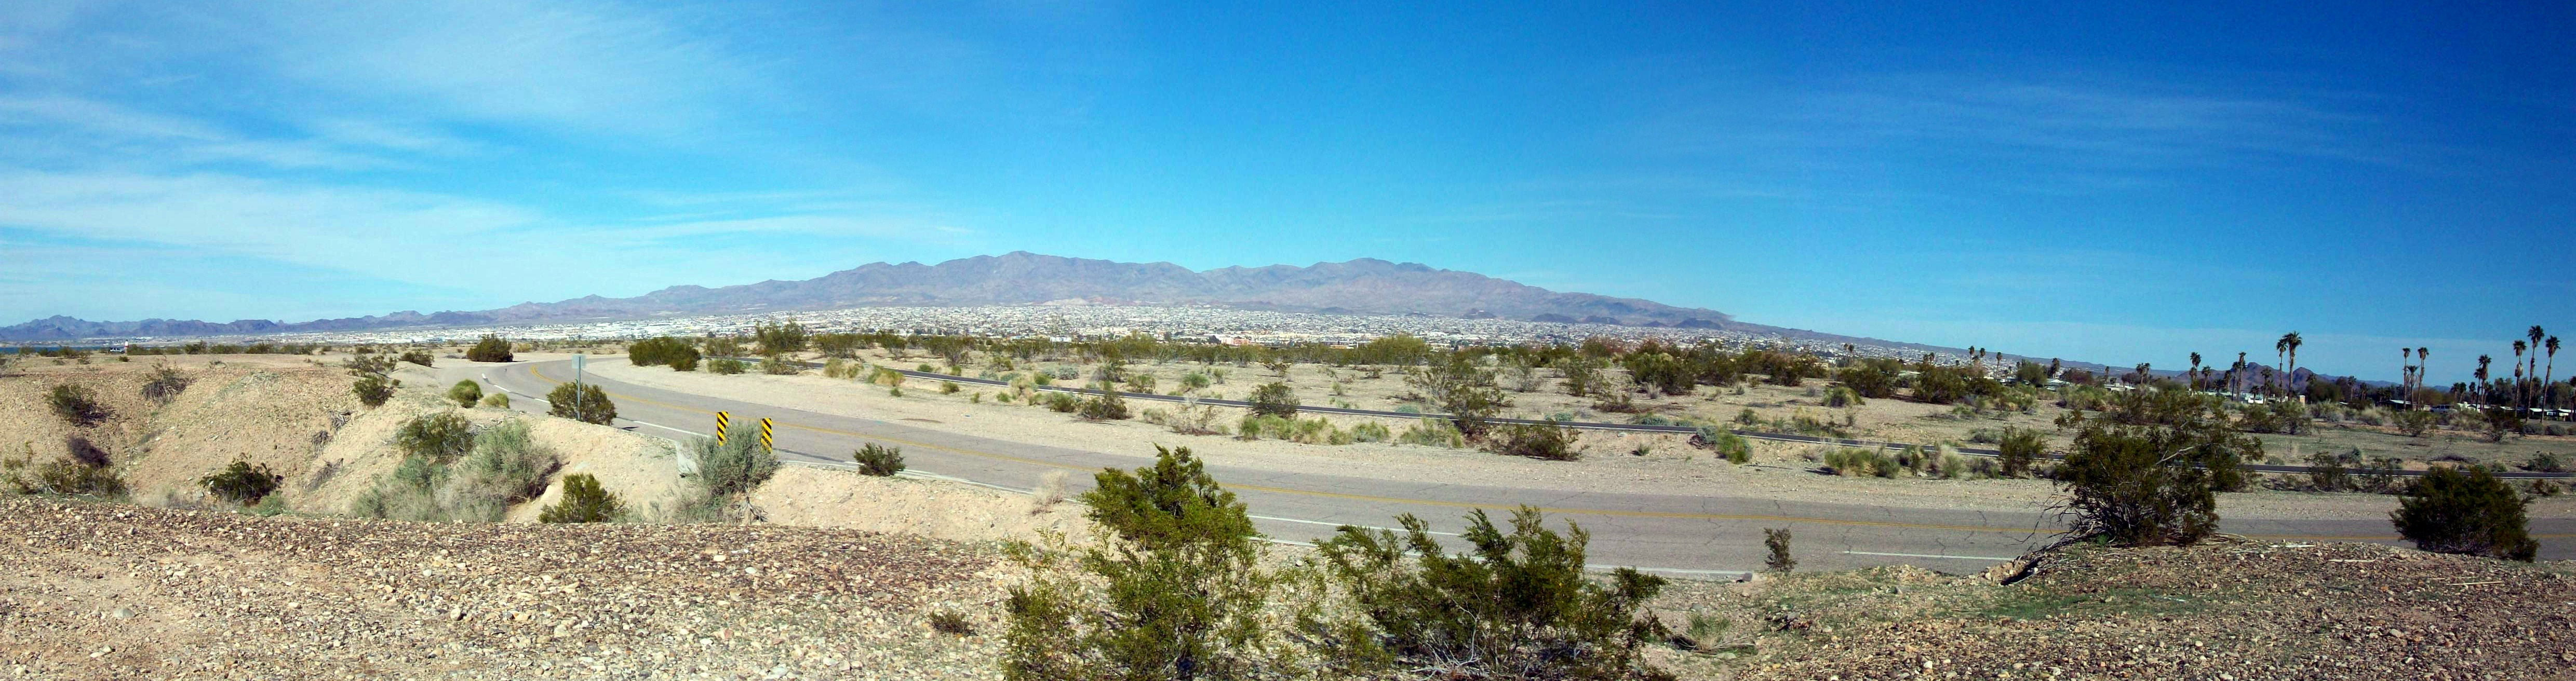 lake havasu city muslim Search lake havasu city, az mobile homes for sale, real estate, and mls listings view for sale listing photos, sold history, nearby sales, and use our match filters.